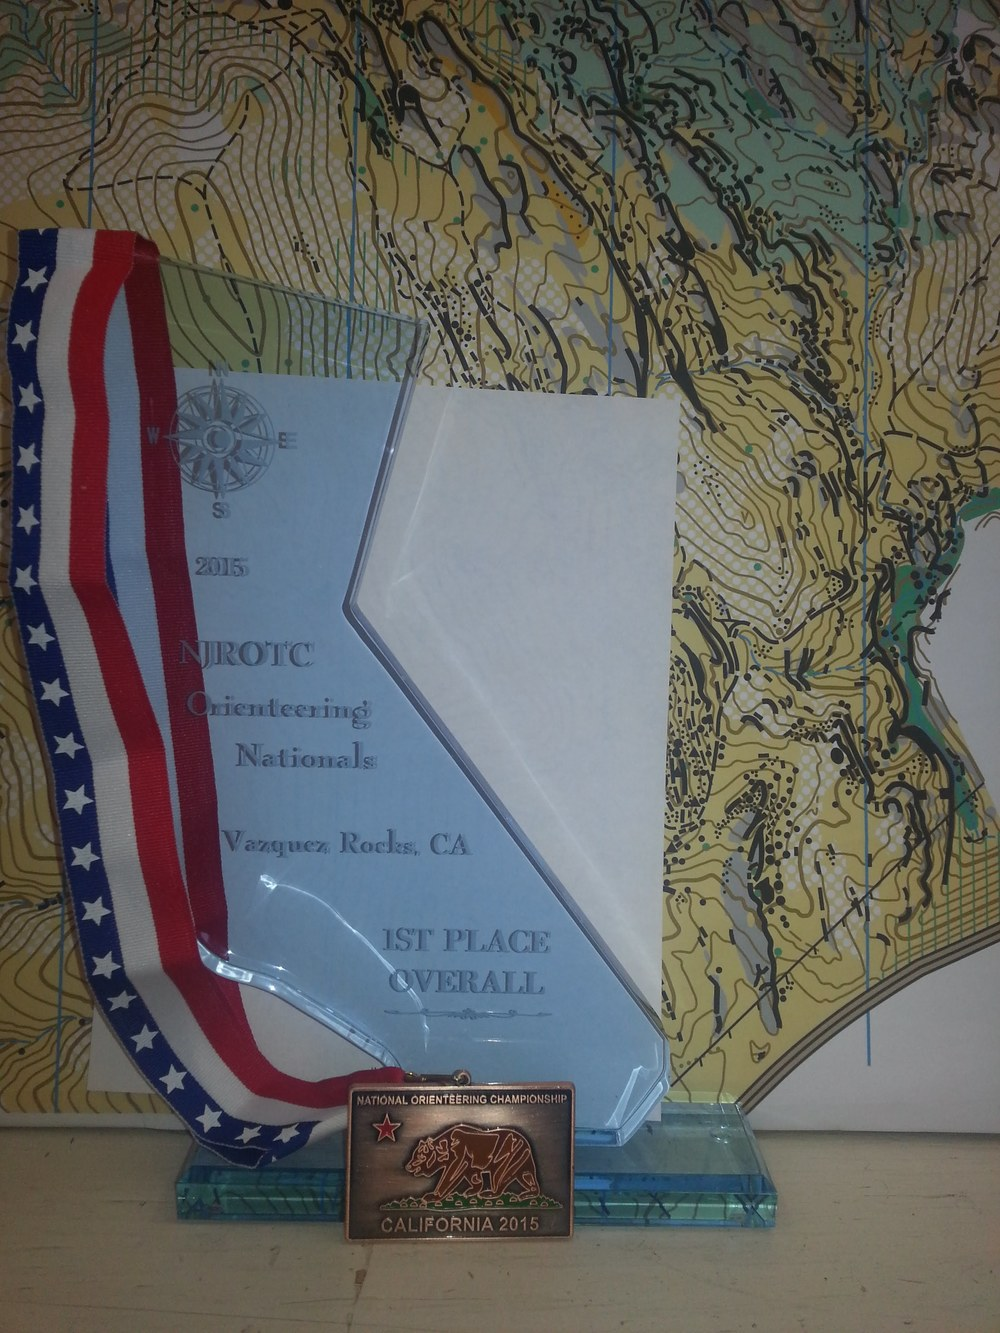 Orienteering medal and trophy.